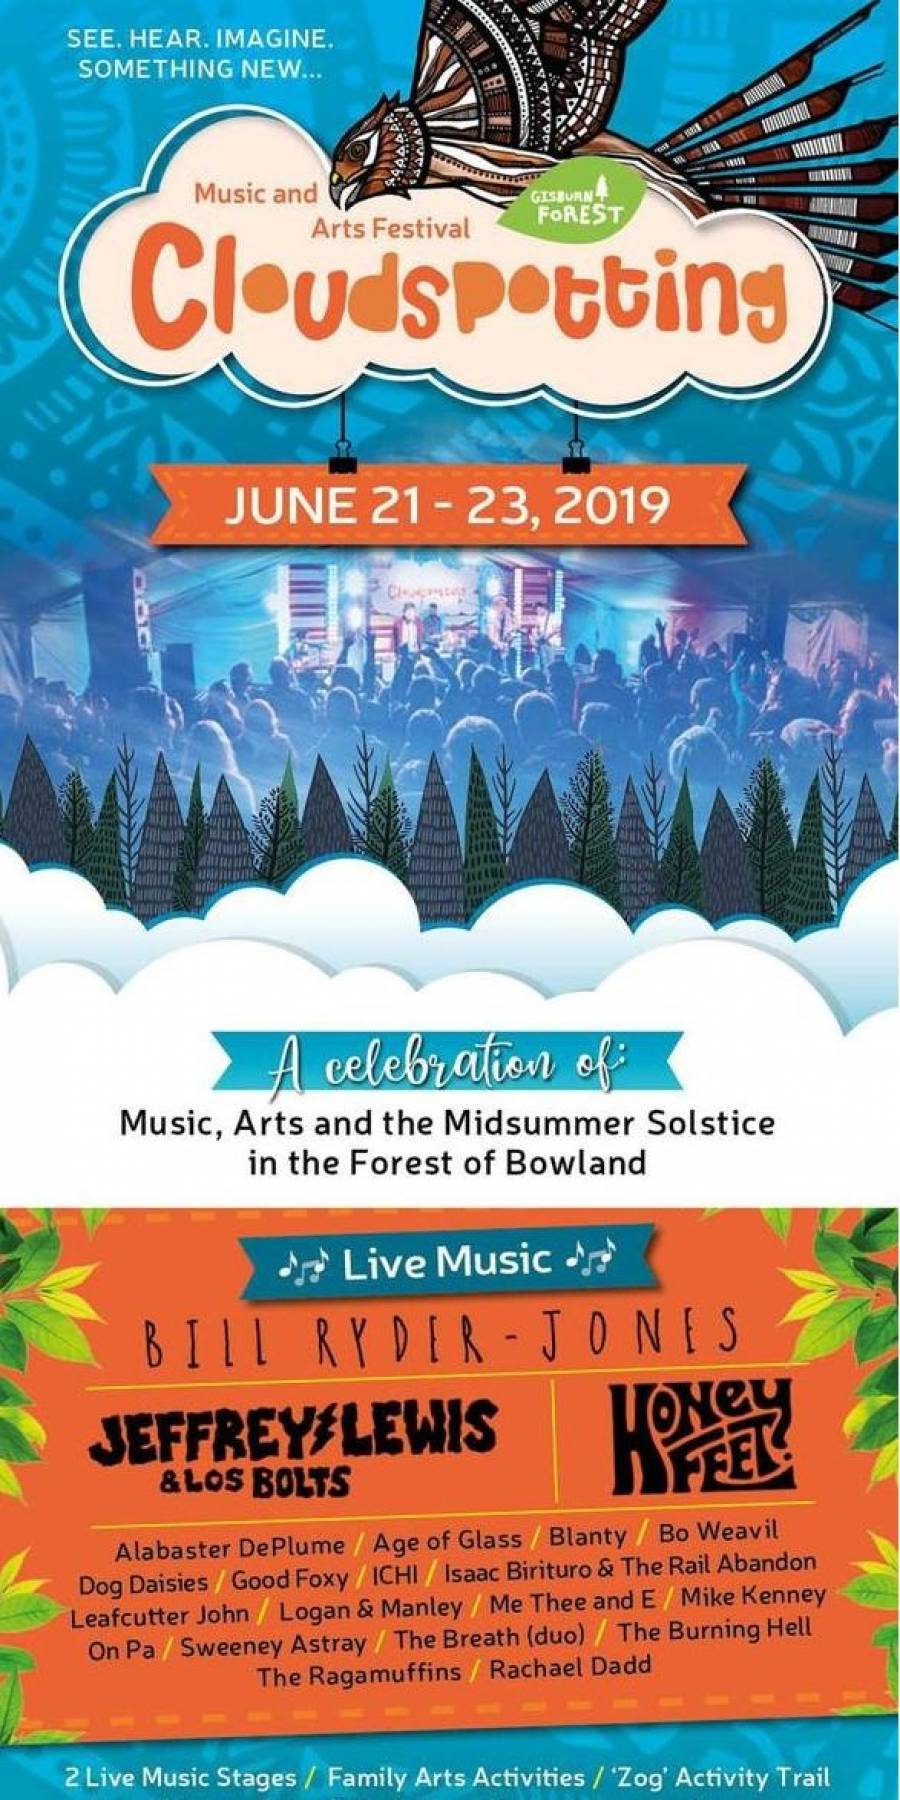 Cloudspotting Music And Arts Festival - Gisburn Forest - 21/6/19 - 23/6/19